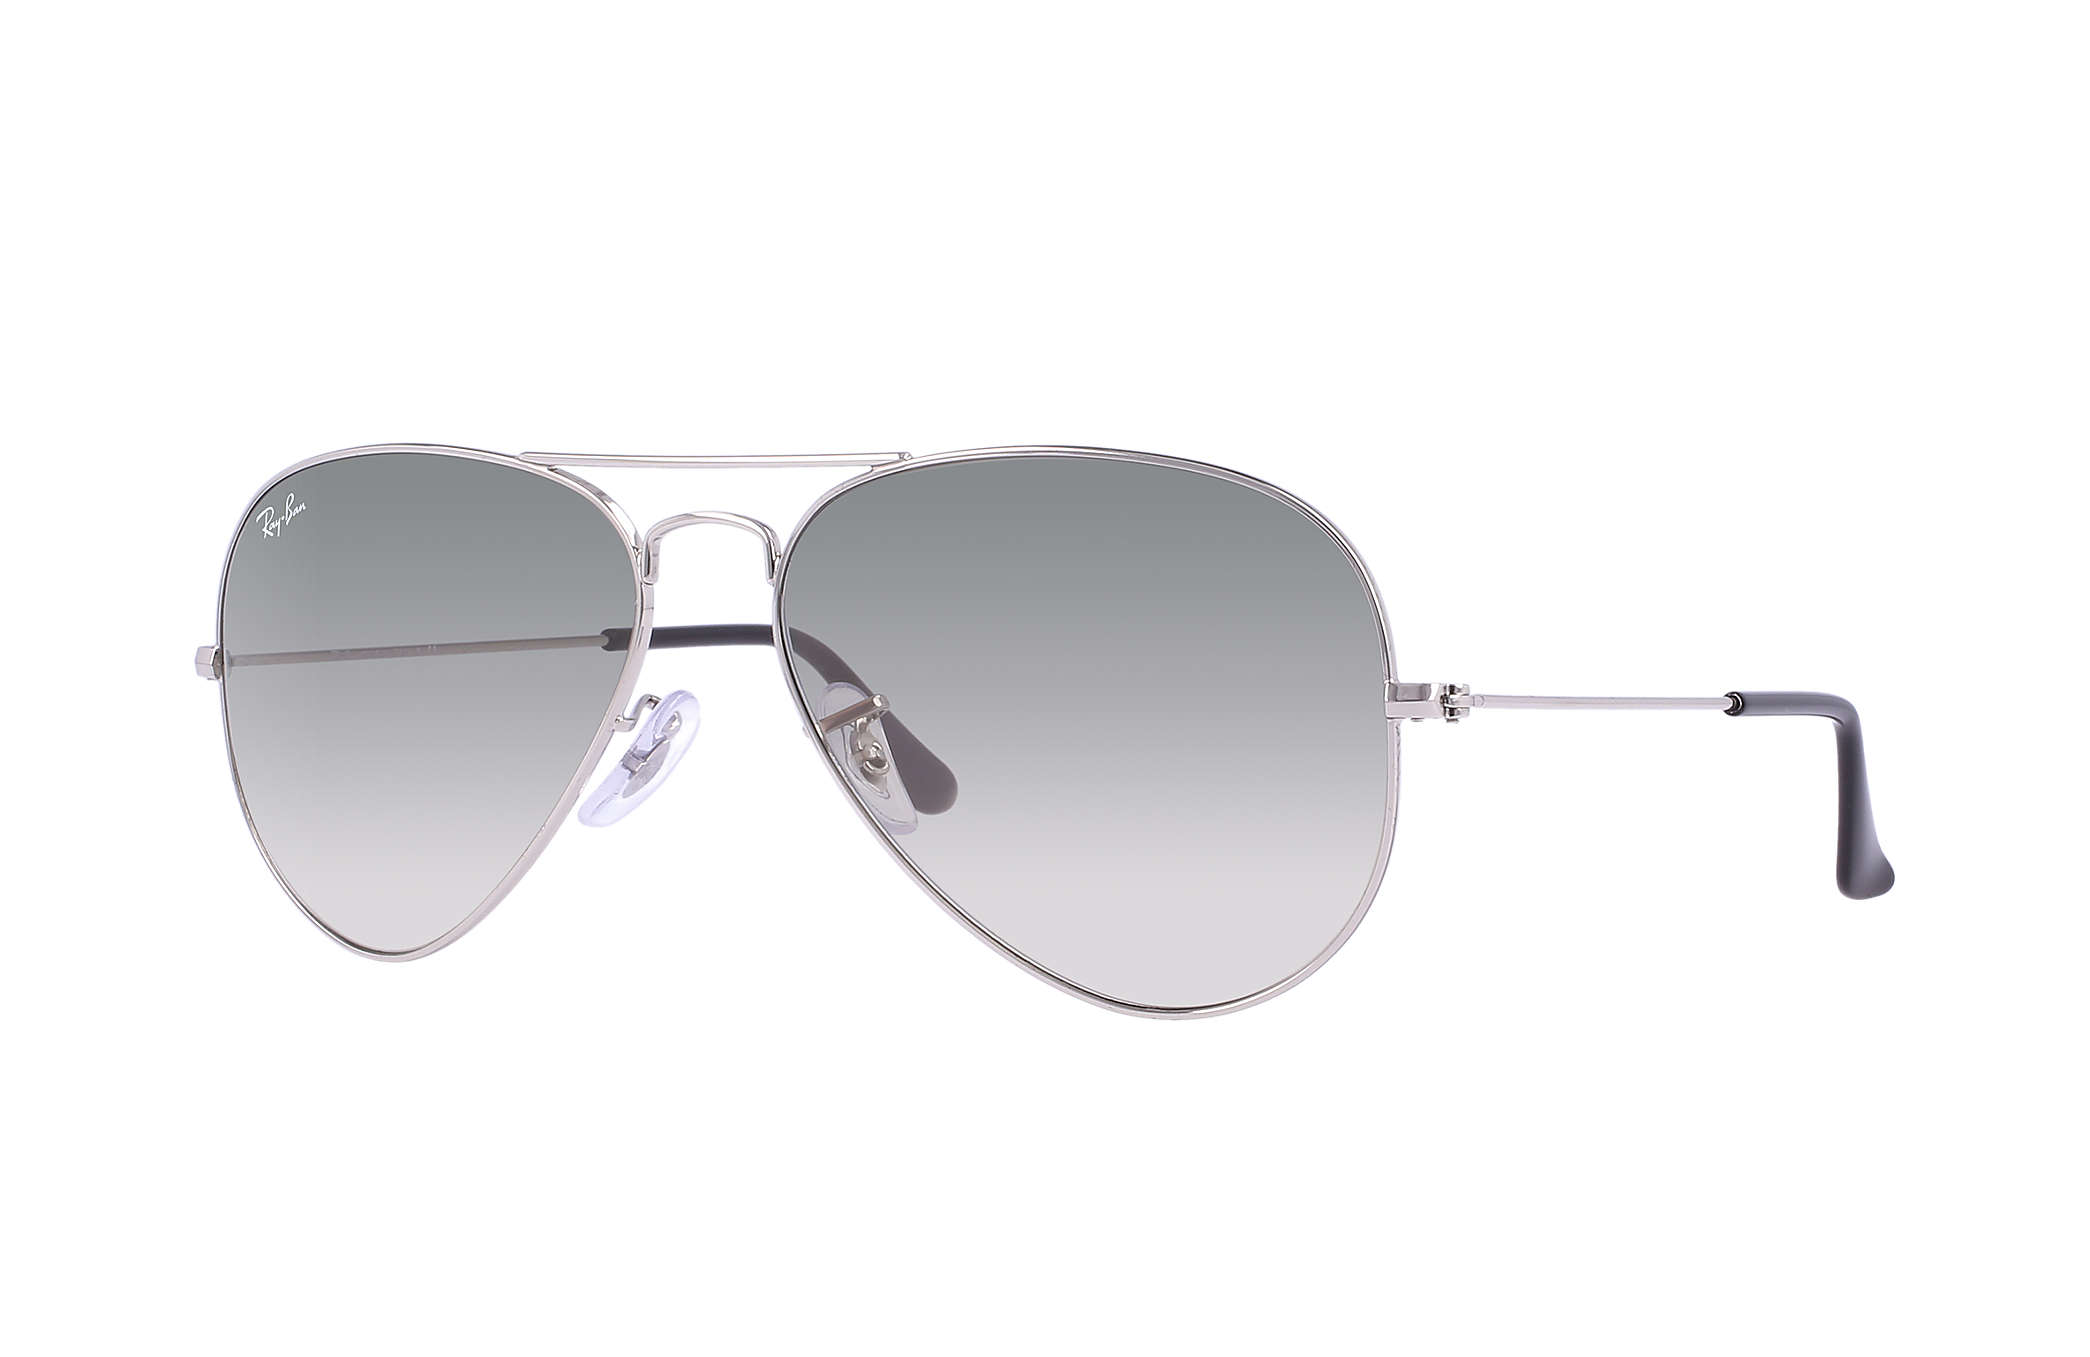 3f384bfb1b Ray-Ban Aviator Gradient RB3025 Silver - Metal - Light Grey Lenses ...